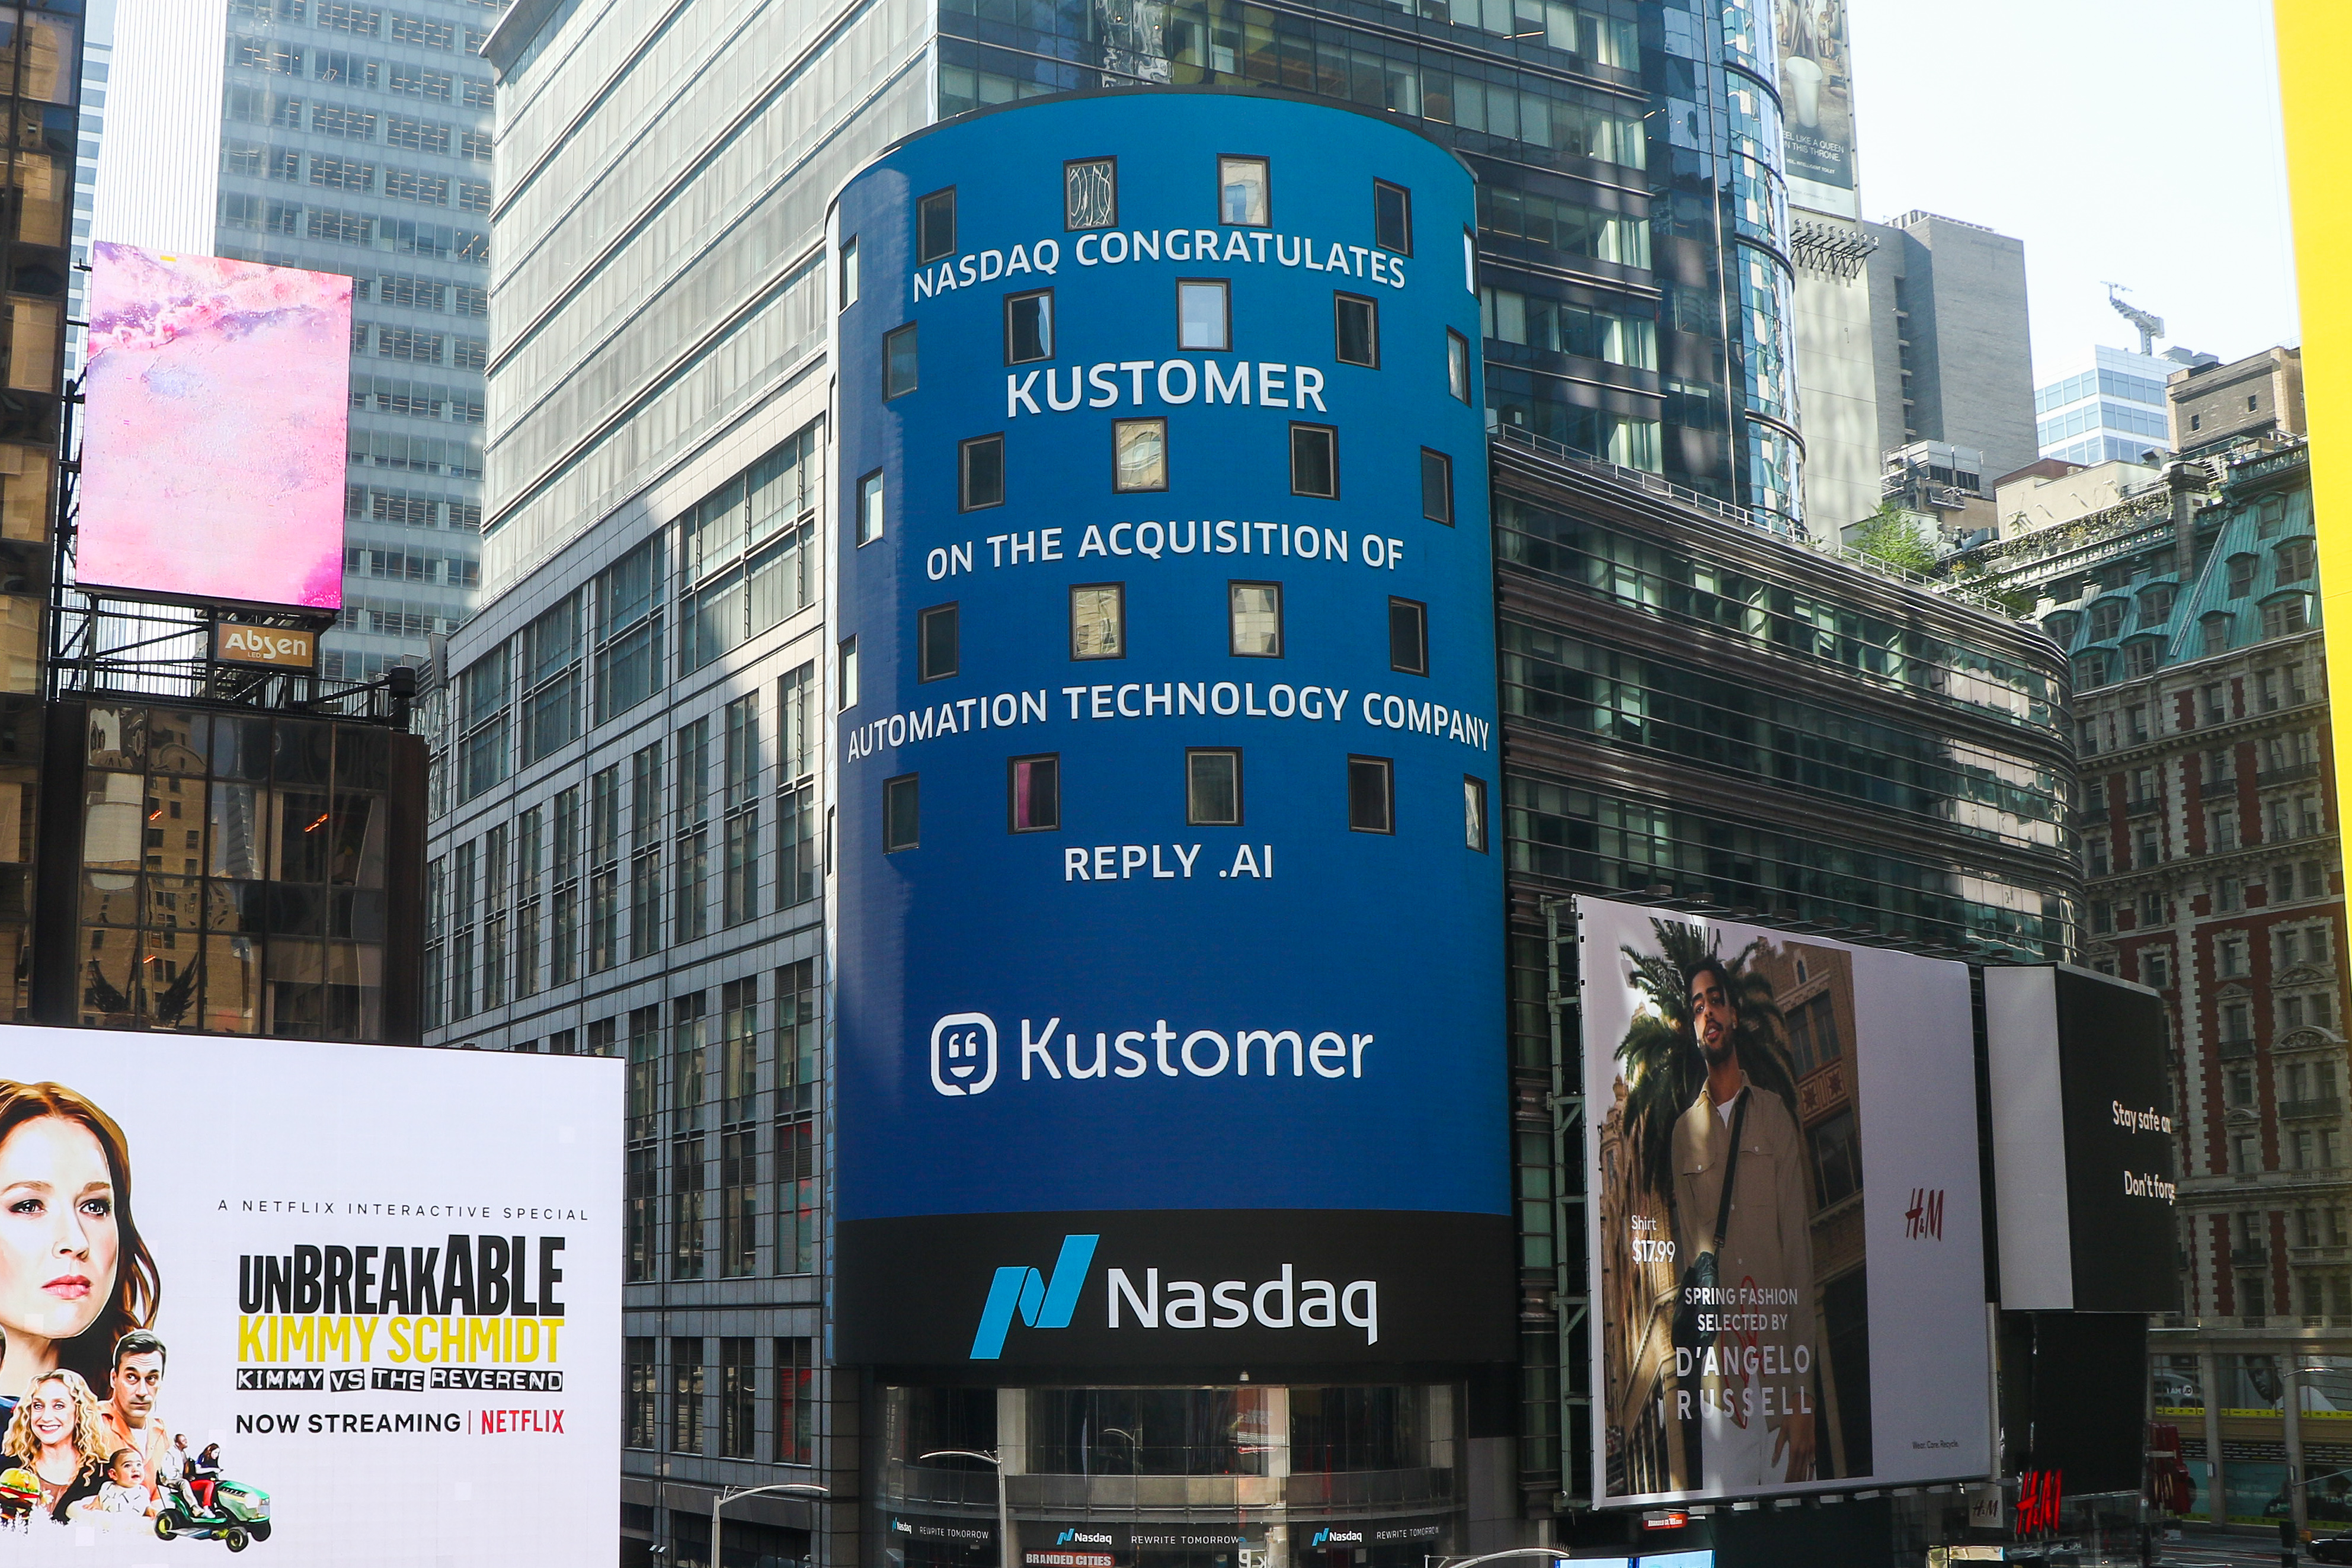 Reply.ai acquired by Kustomer and chatbot fireside chat (last email!)